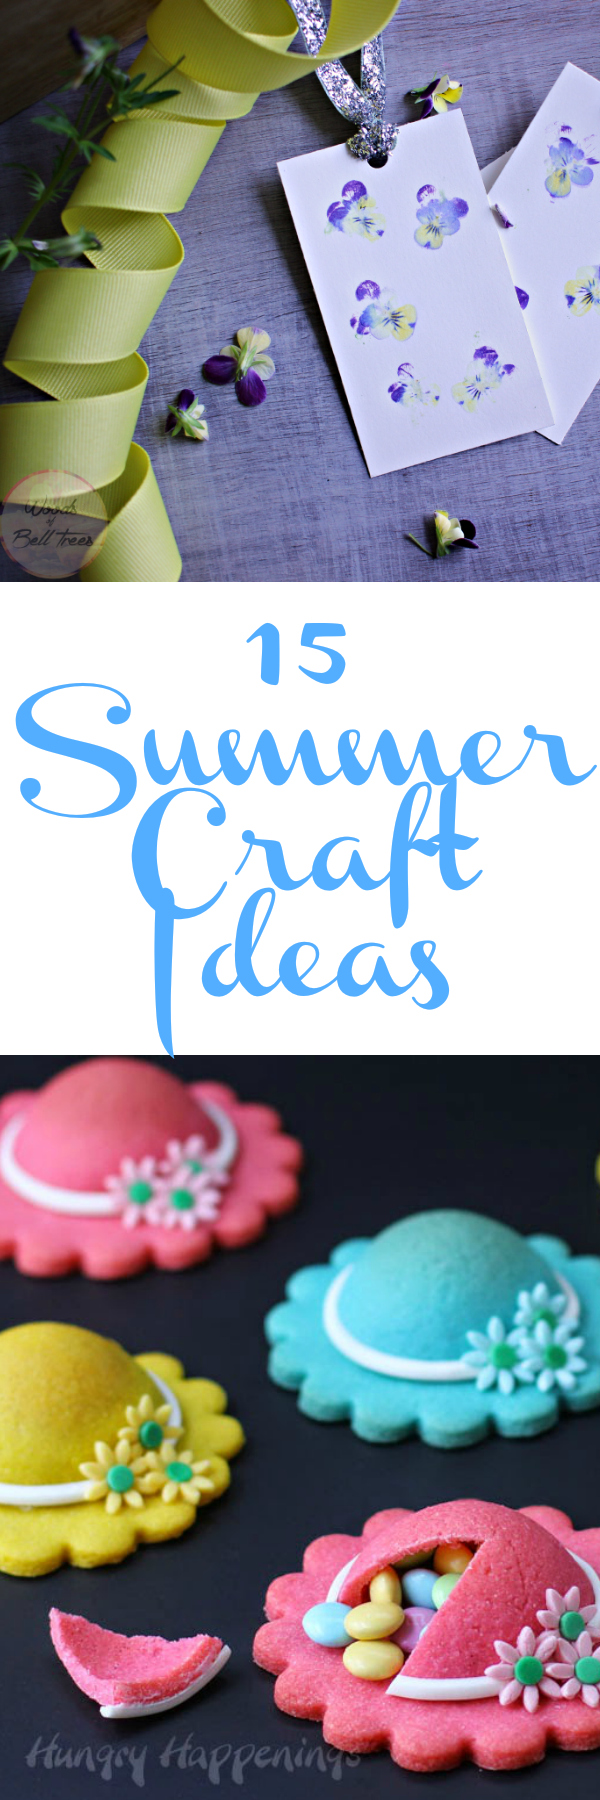 15 Summer Craft Ideas: The best, cutest and most creative summer crafts from around the web!